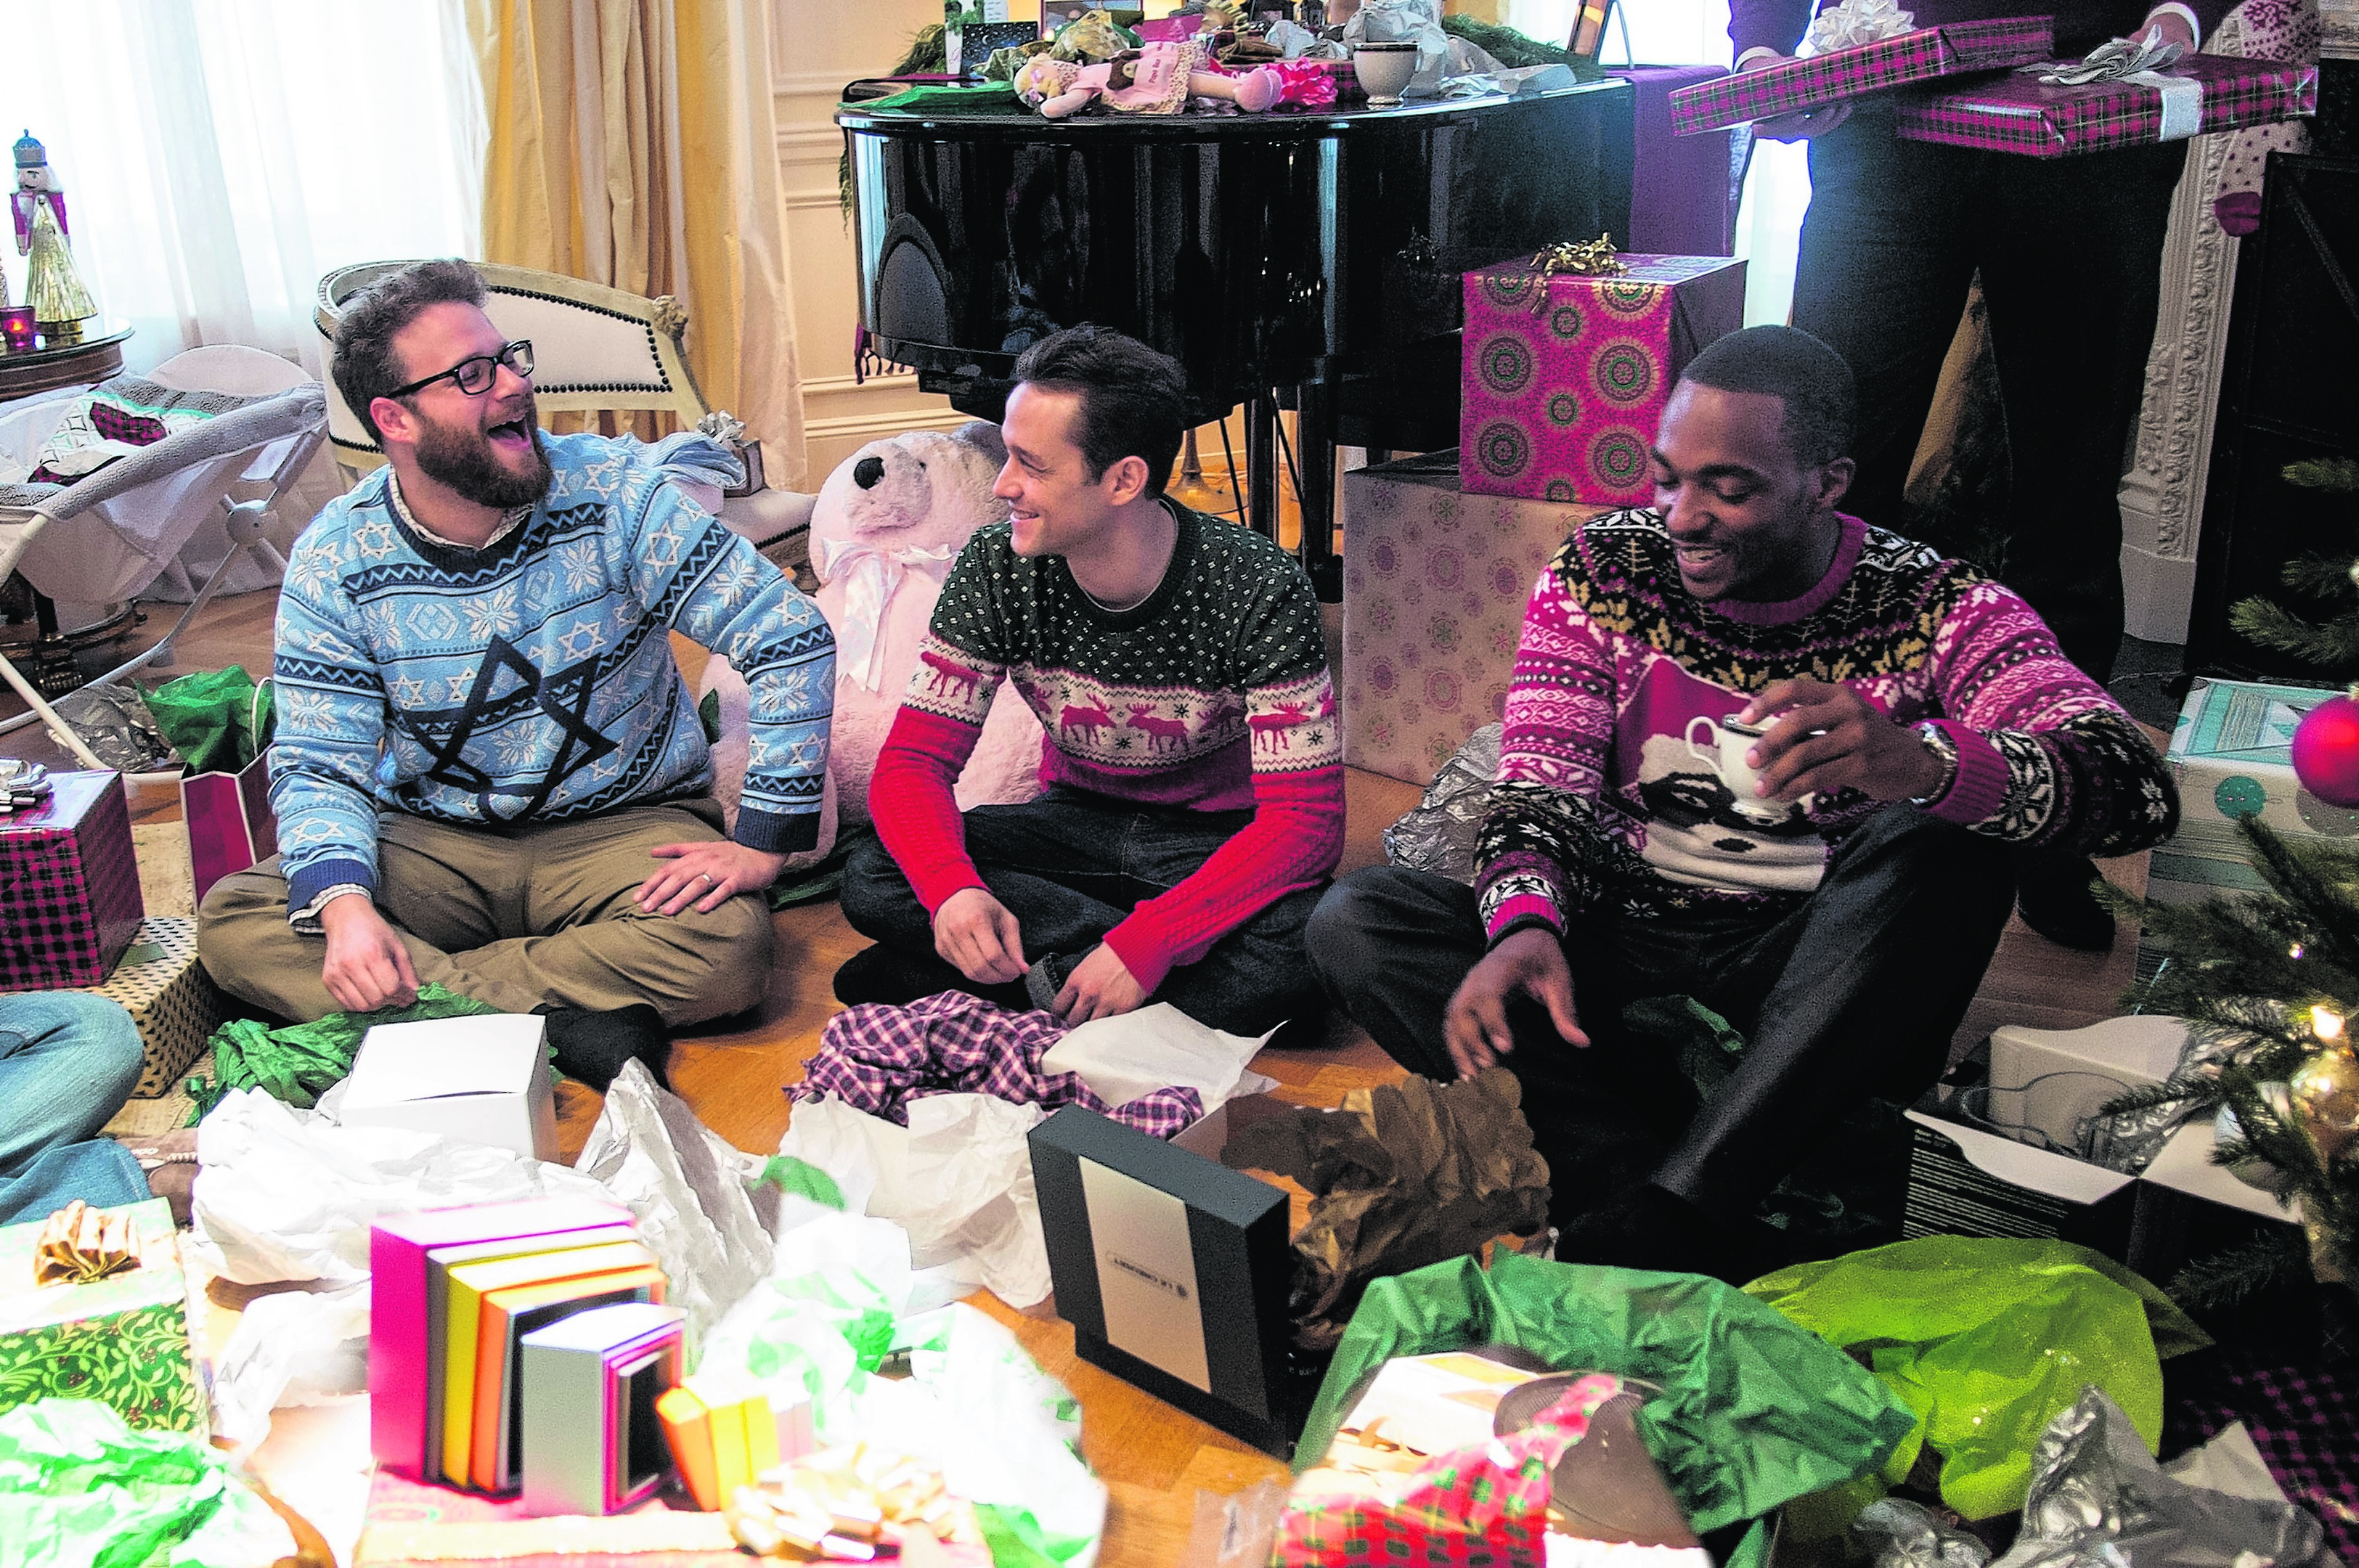 From left:  Seth Rogen, Joseph Gordon-Levitt and Anthony Mackie in The Night Before